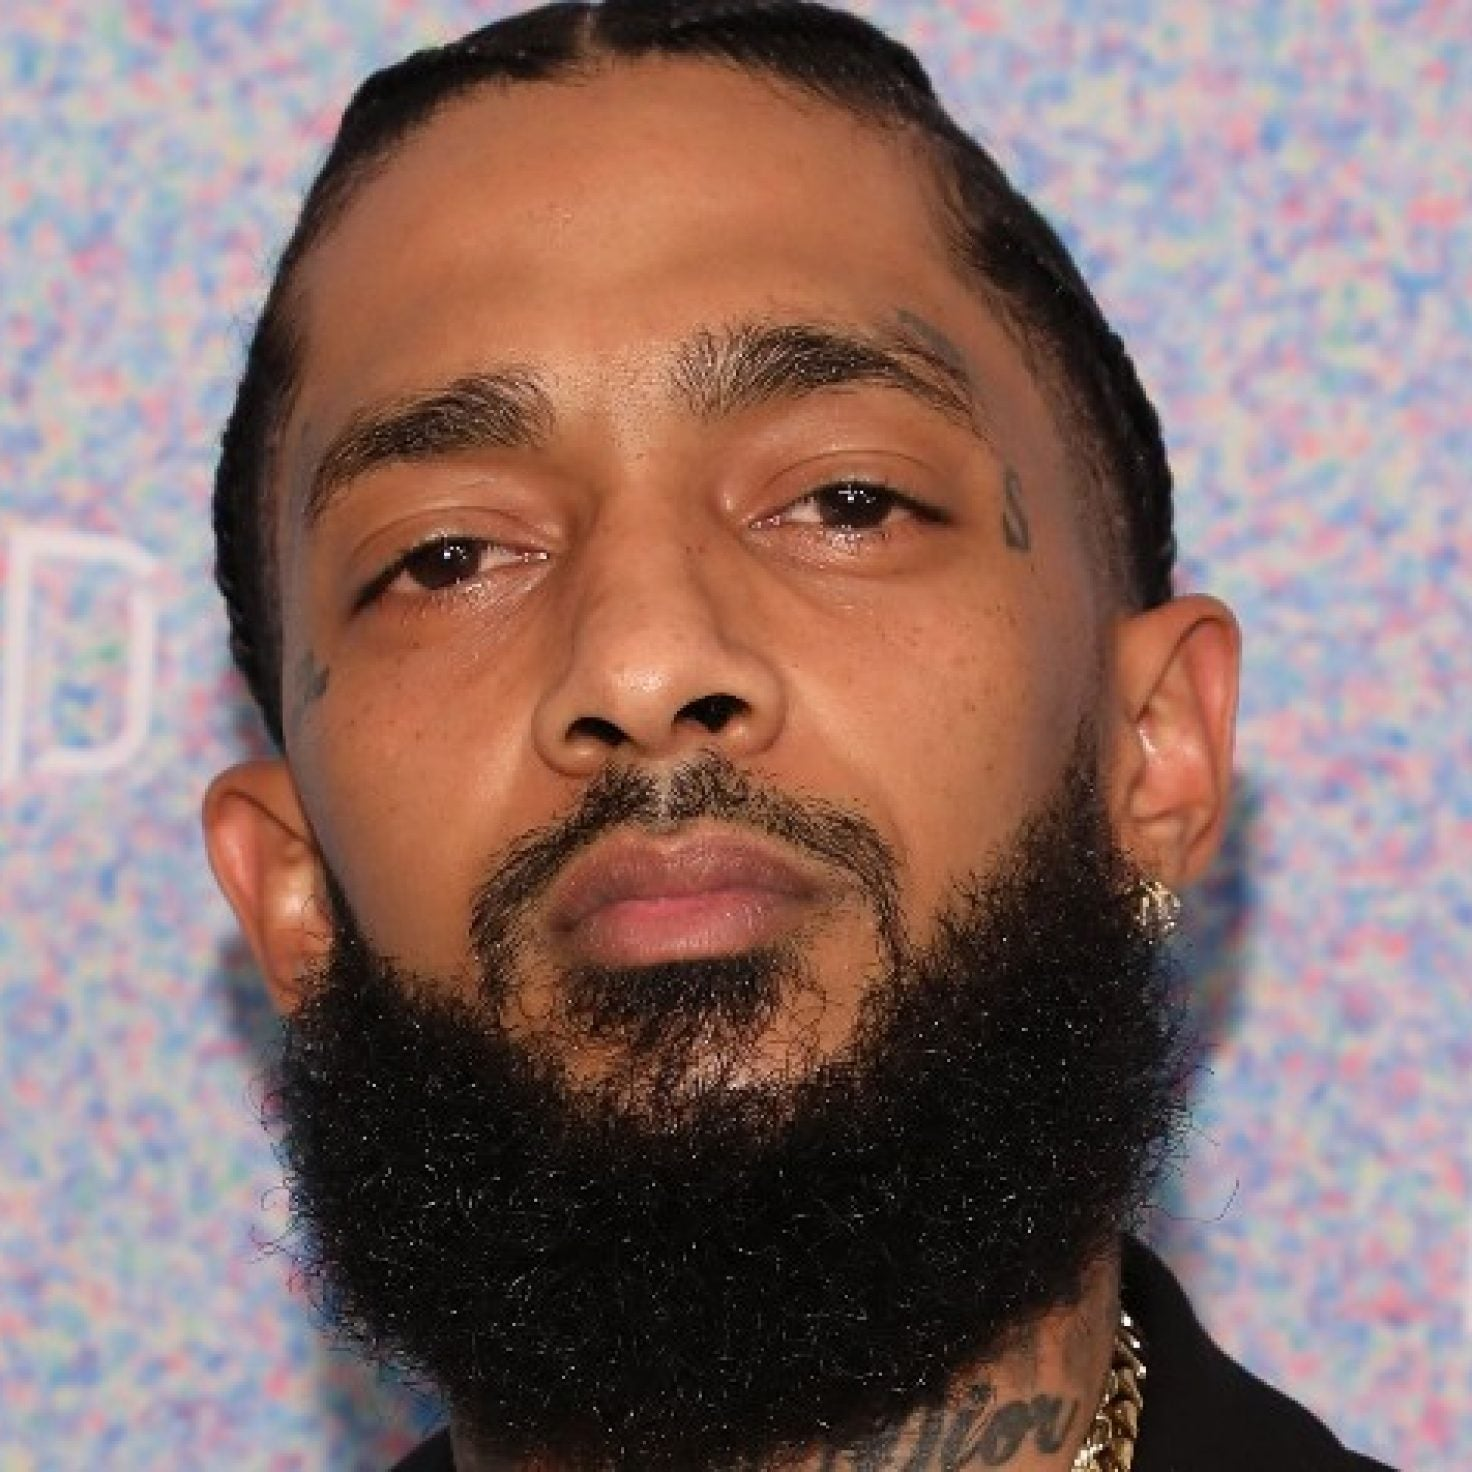 20 Times We Loved How The Late Nipsey Hussle Was Memorialized On Nails In 2019